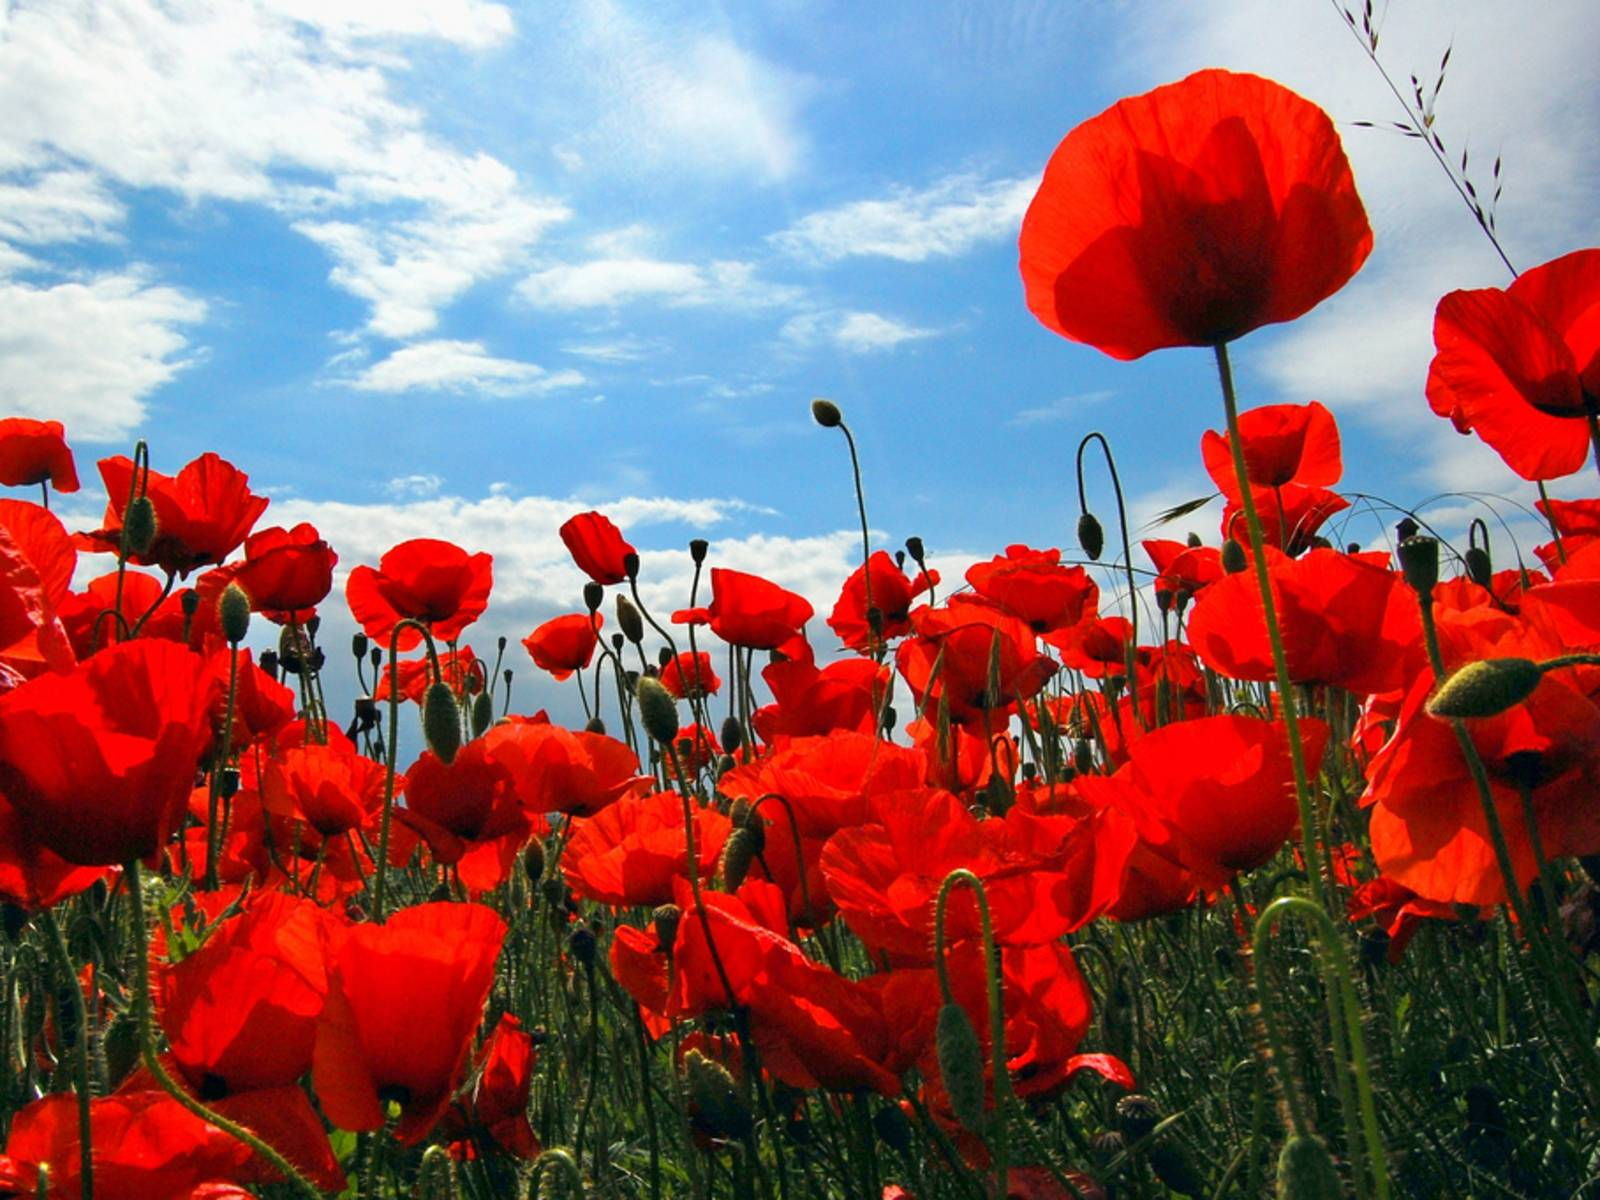 download wallpaper poppies red - photo #27